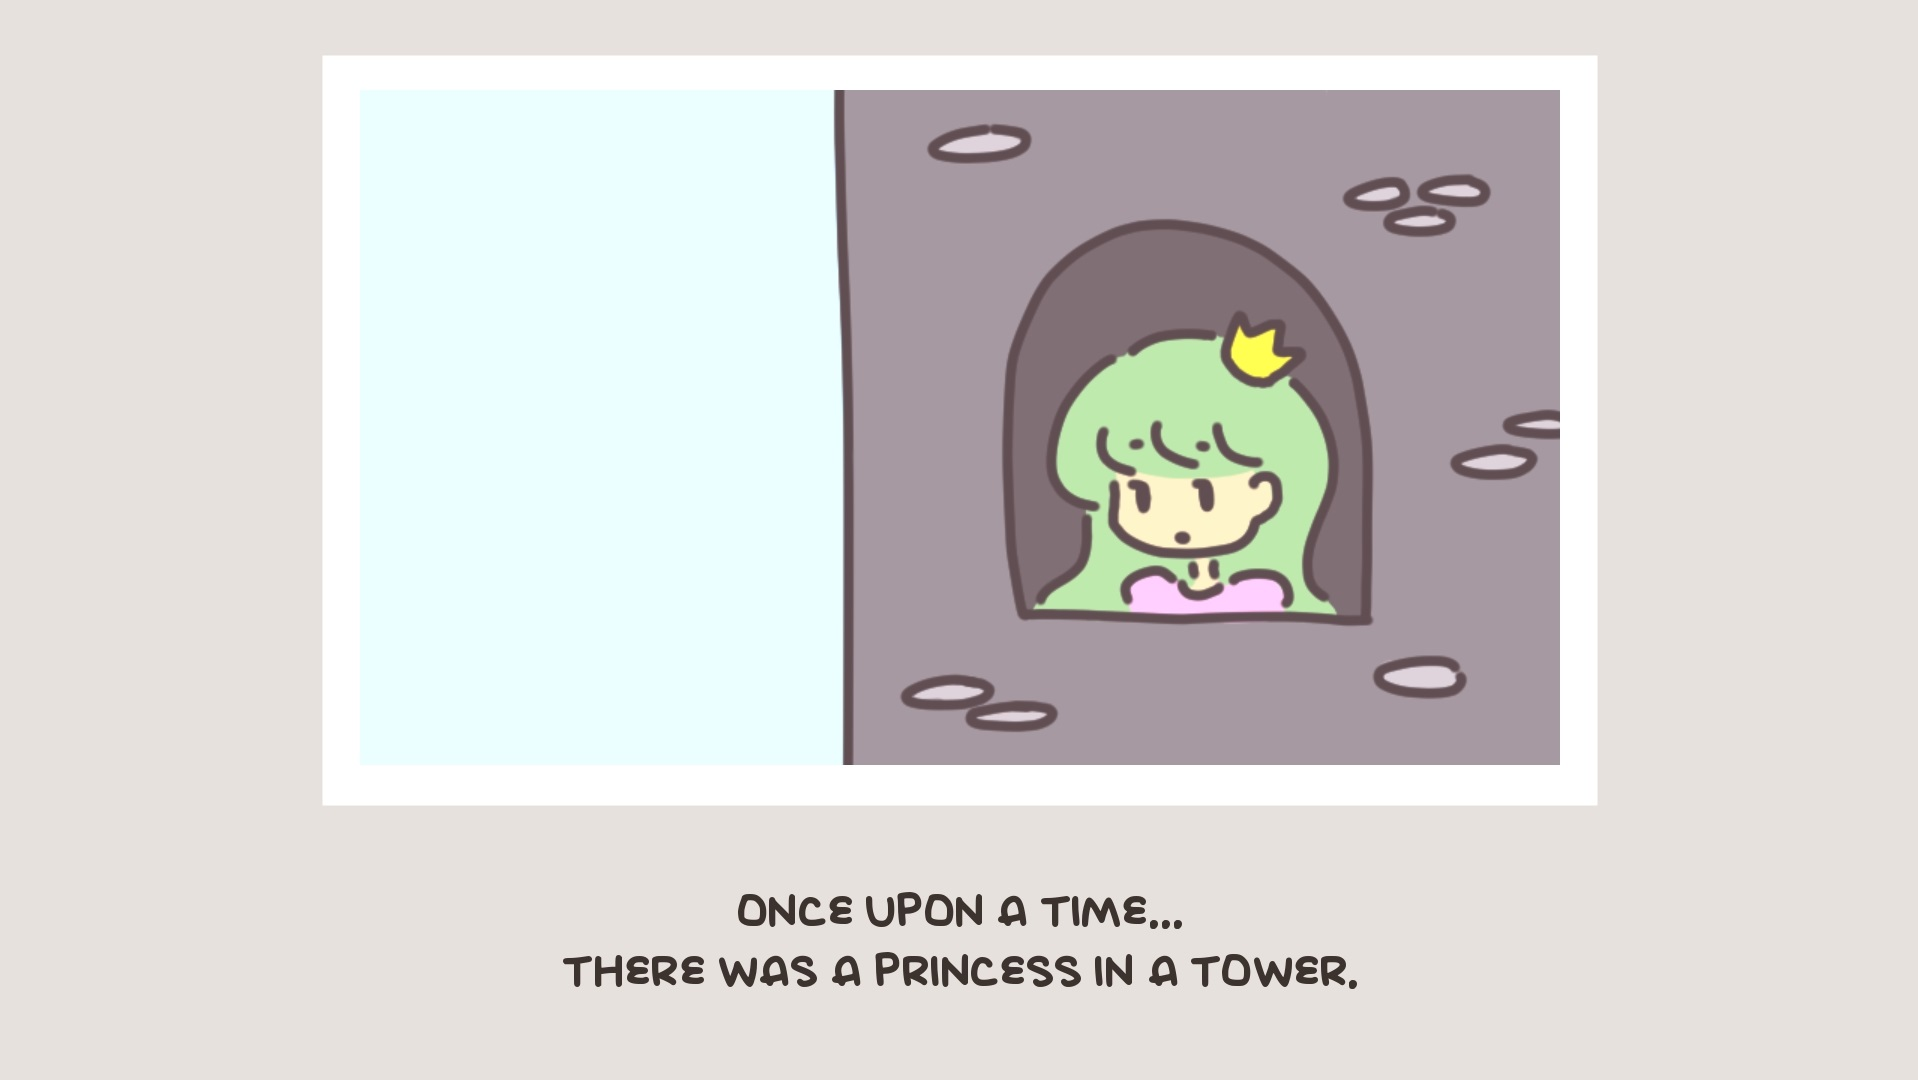 One upon a time... there was a princess in a tower